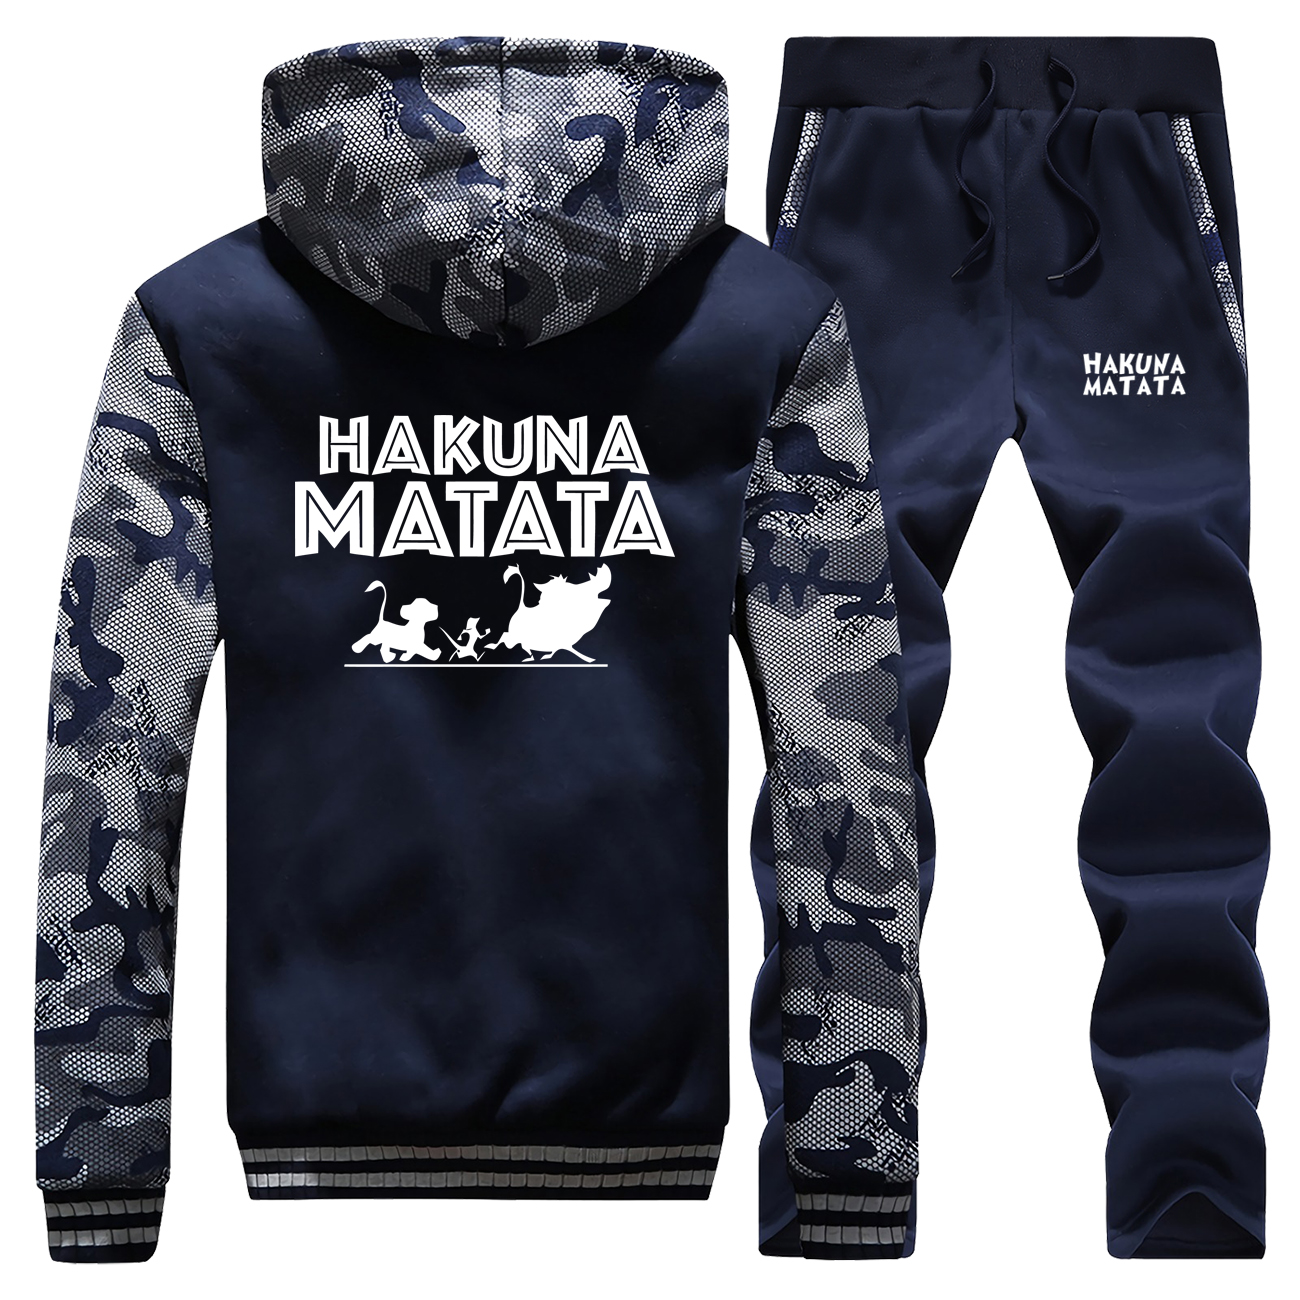 The Lion King Camo Men's Sets Hakuna Matata Anime Jacket Set 2019 Winter Thick Pants Sweatshirts Fleece Mens Full Suit Tracksuit